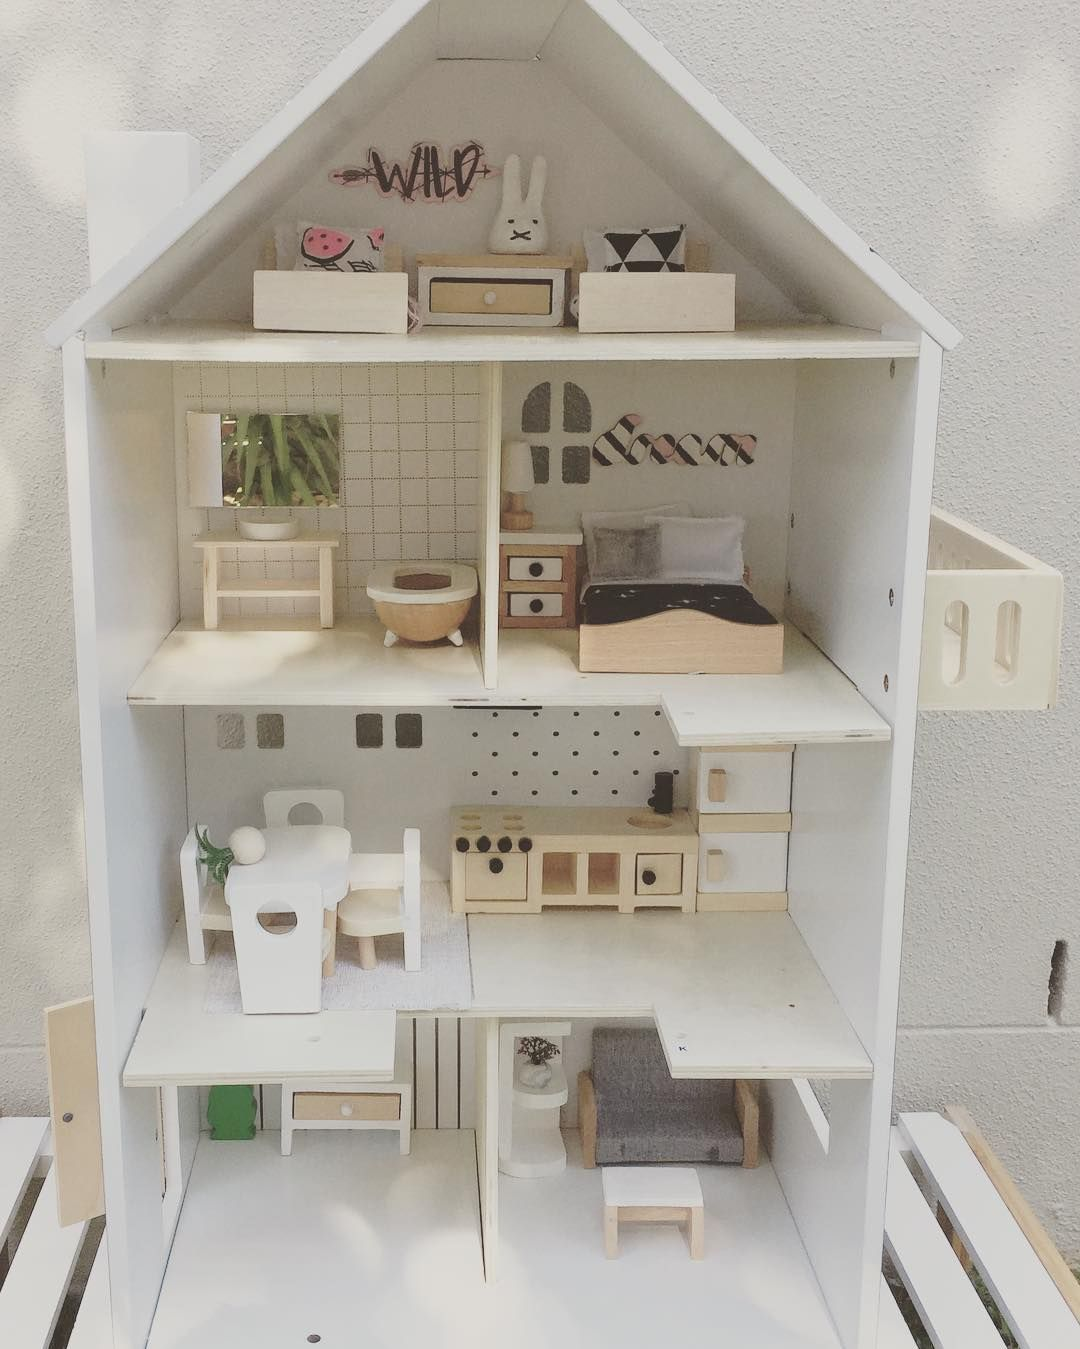 My Little Kmart Dollhouse Is Still On Ebay One Day Left To Go Before Auction Ends I Even Gave It A Mini M Doll House Plans Diy Dollhouse Furniture Doll House